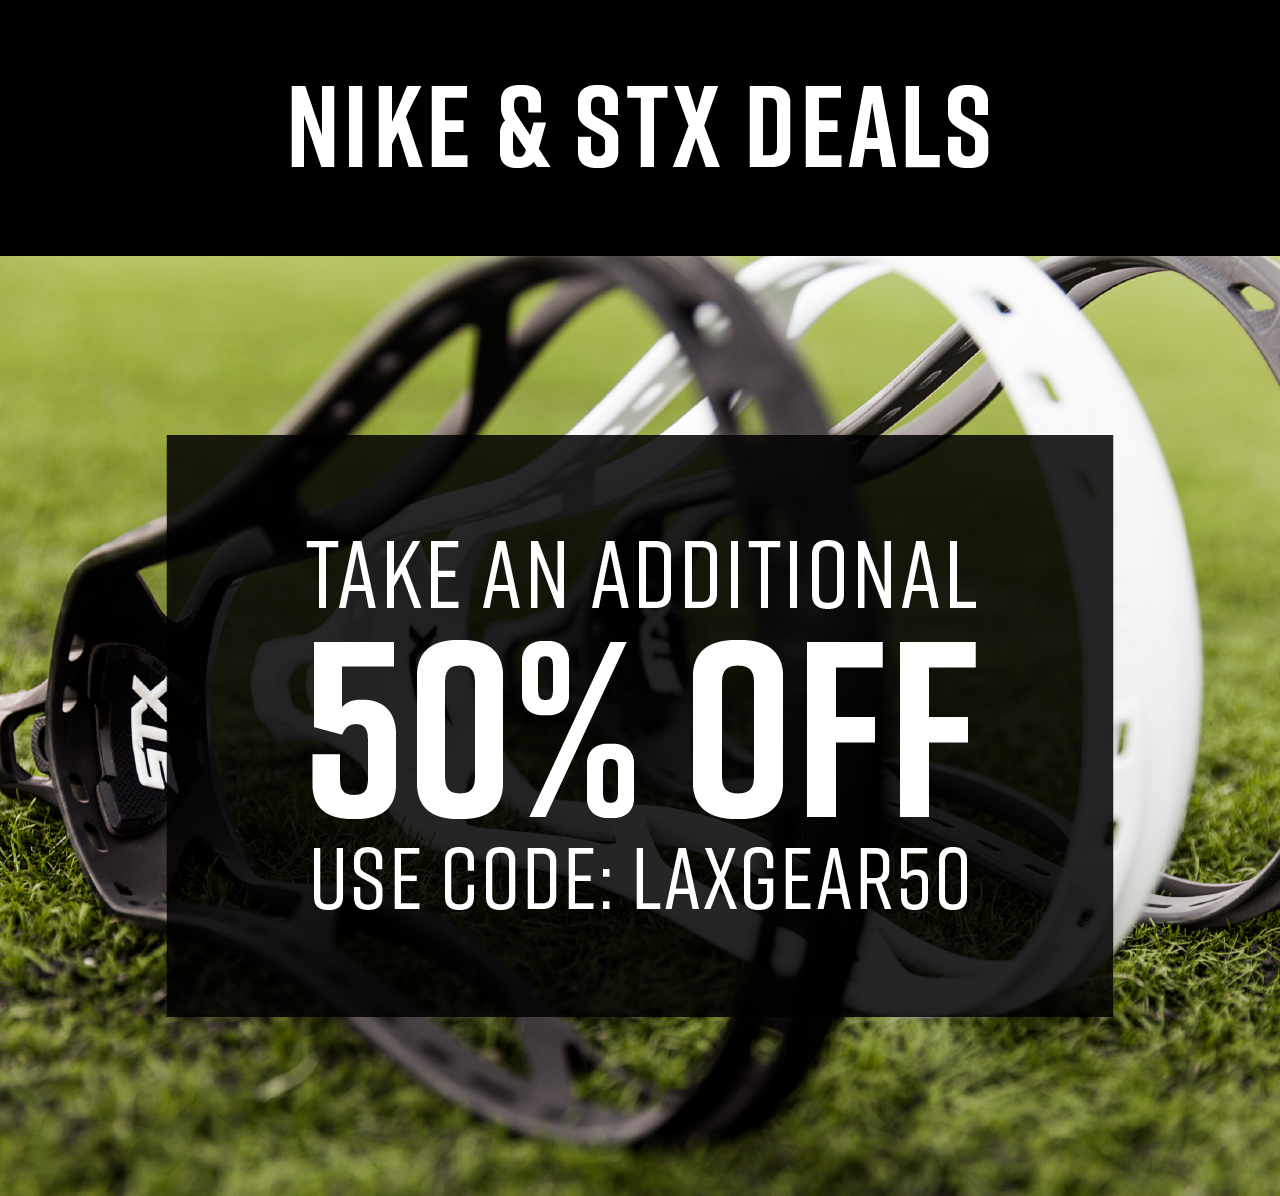 Additional 50% Off Closeout Gear